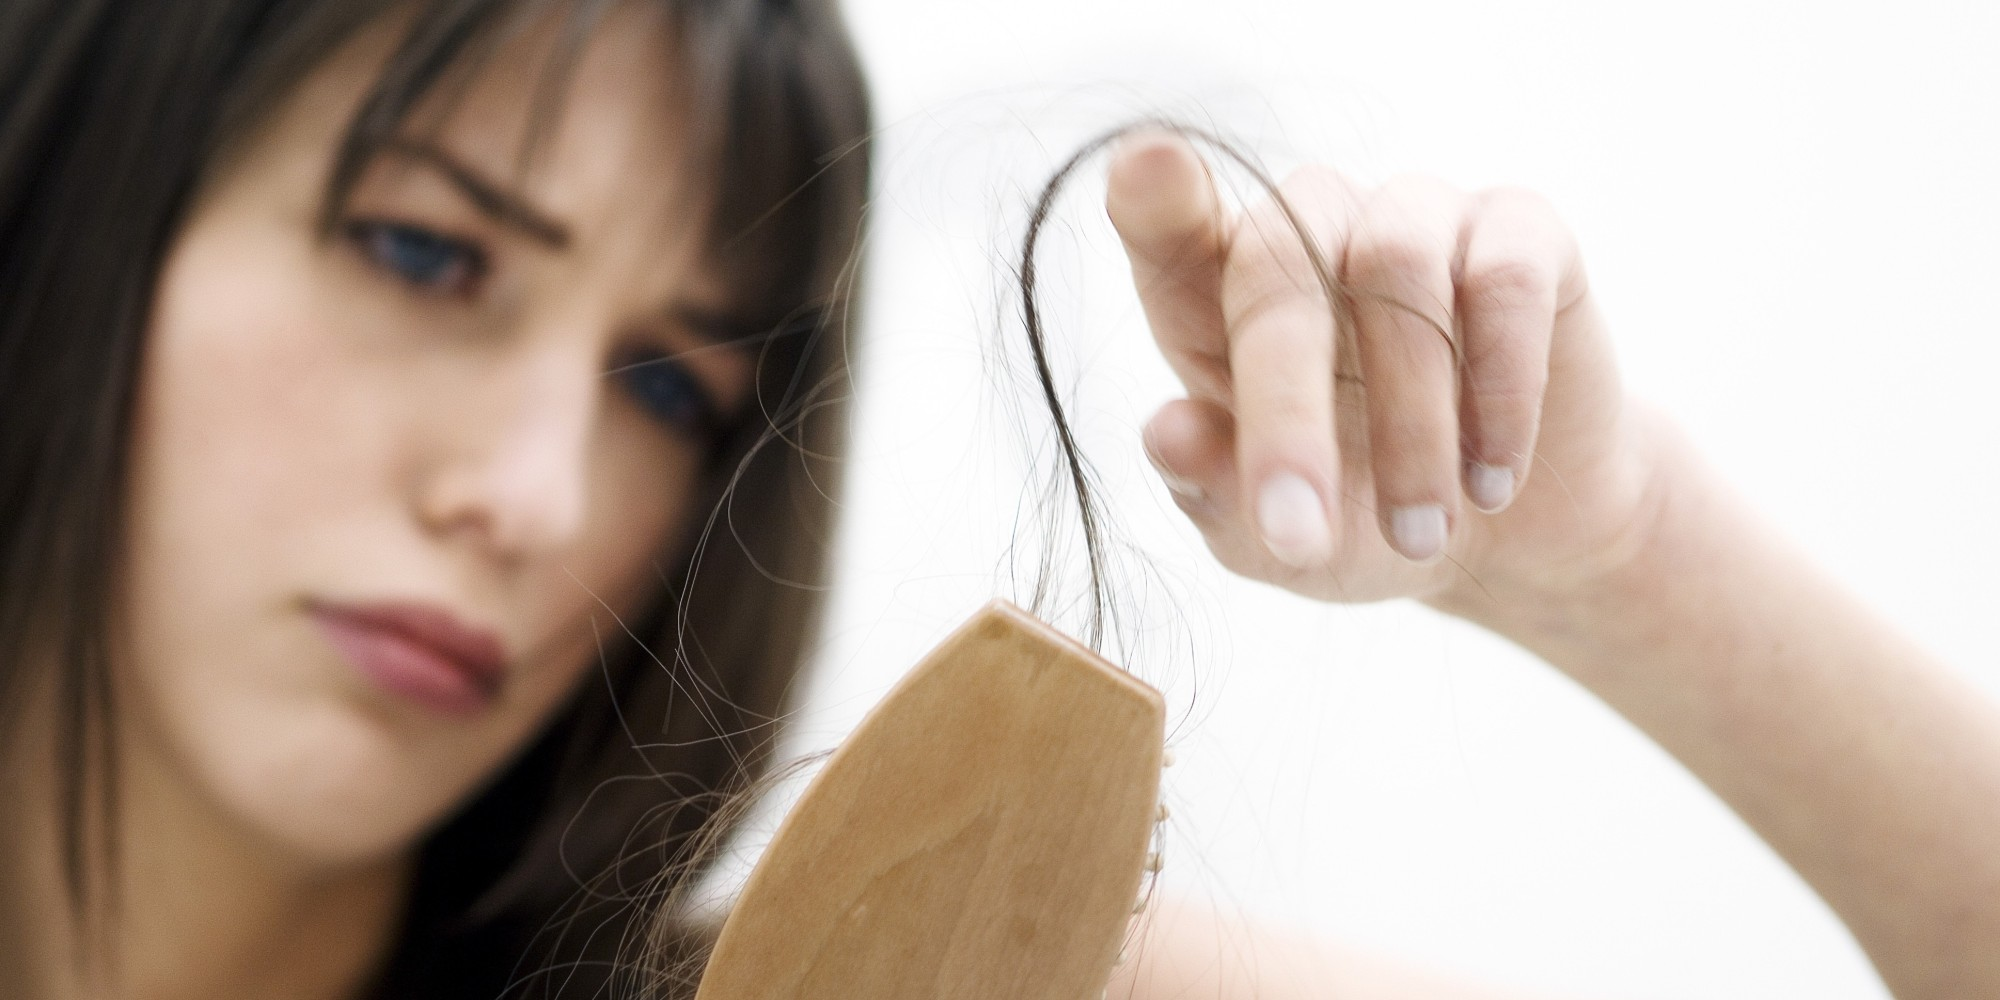 Portrait of a young woman brushing her hair, close up (studio)